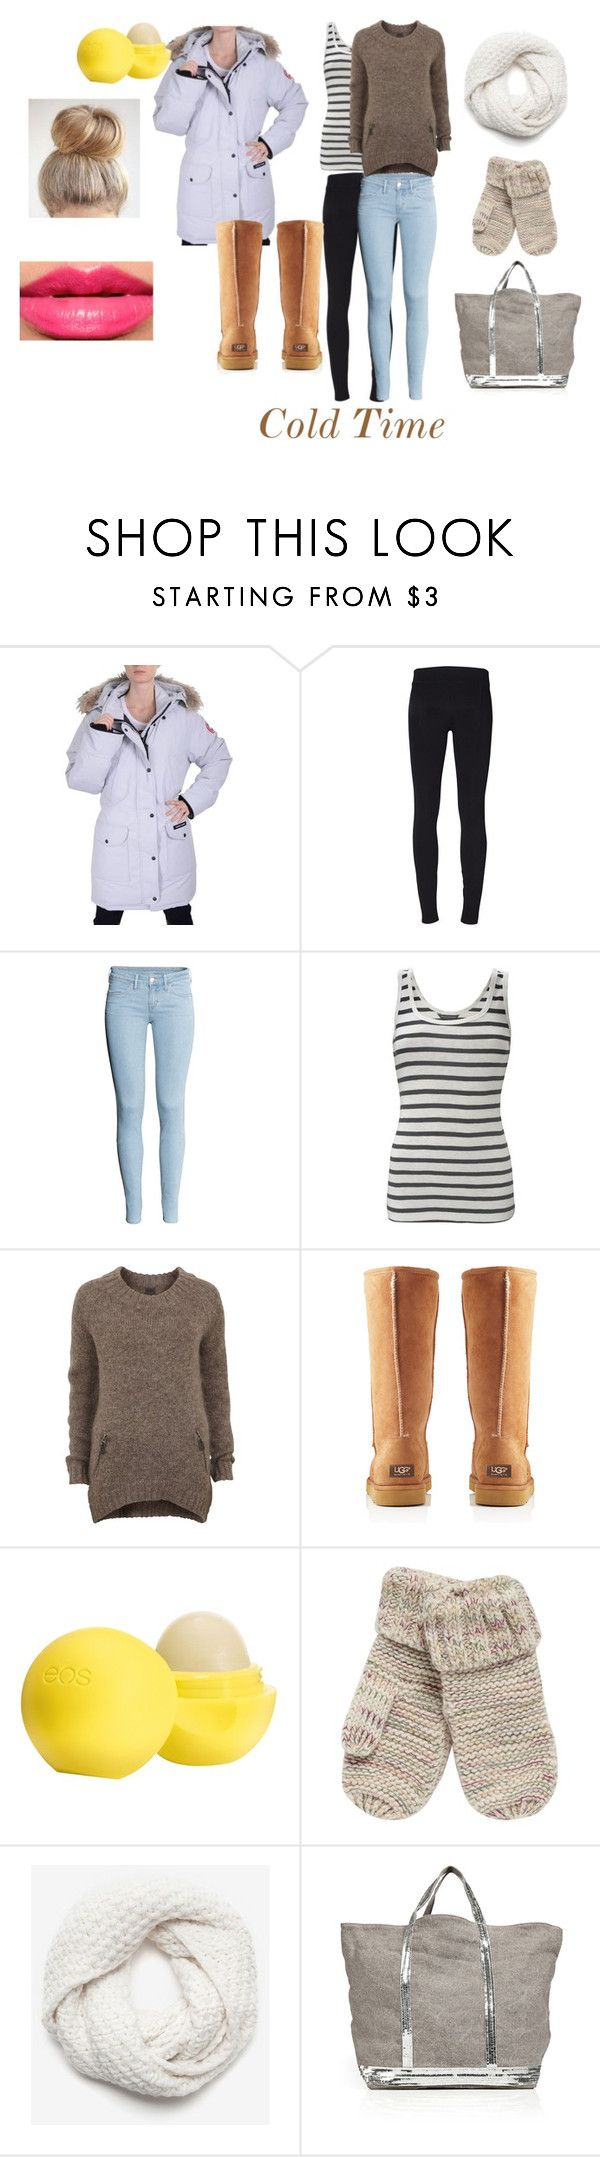 """""""Winter"""" by kabylou ❤ liked on Polyvore featuring Canada Goose, Helmut Lang, H&M, French Connection, Object Collectors Item, UGG Australia, Eos, Mantaray, Christopher Fischer and Vanessa Bruno"""